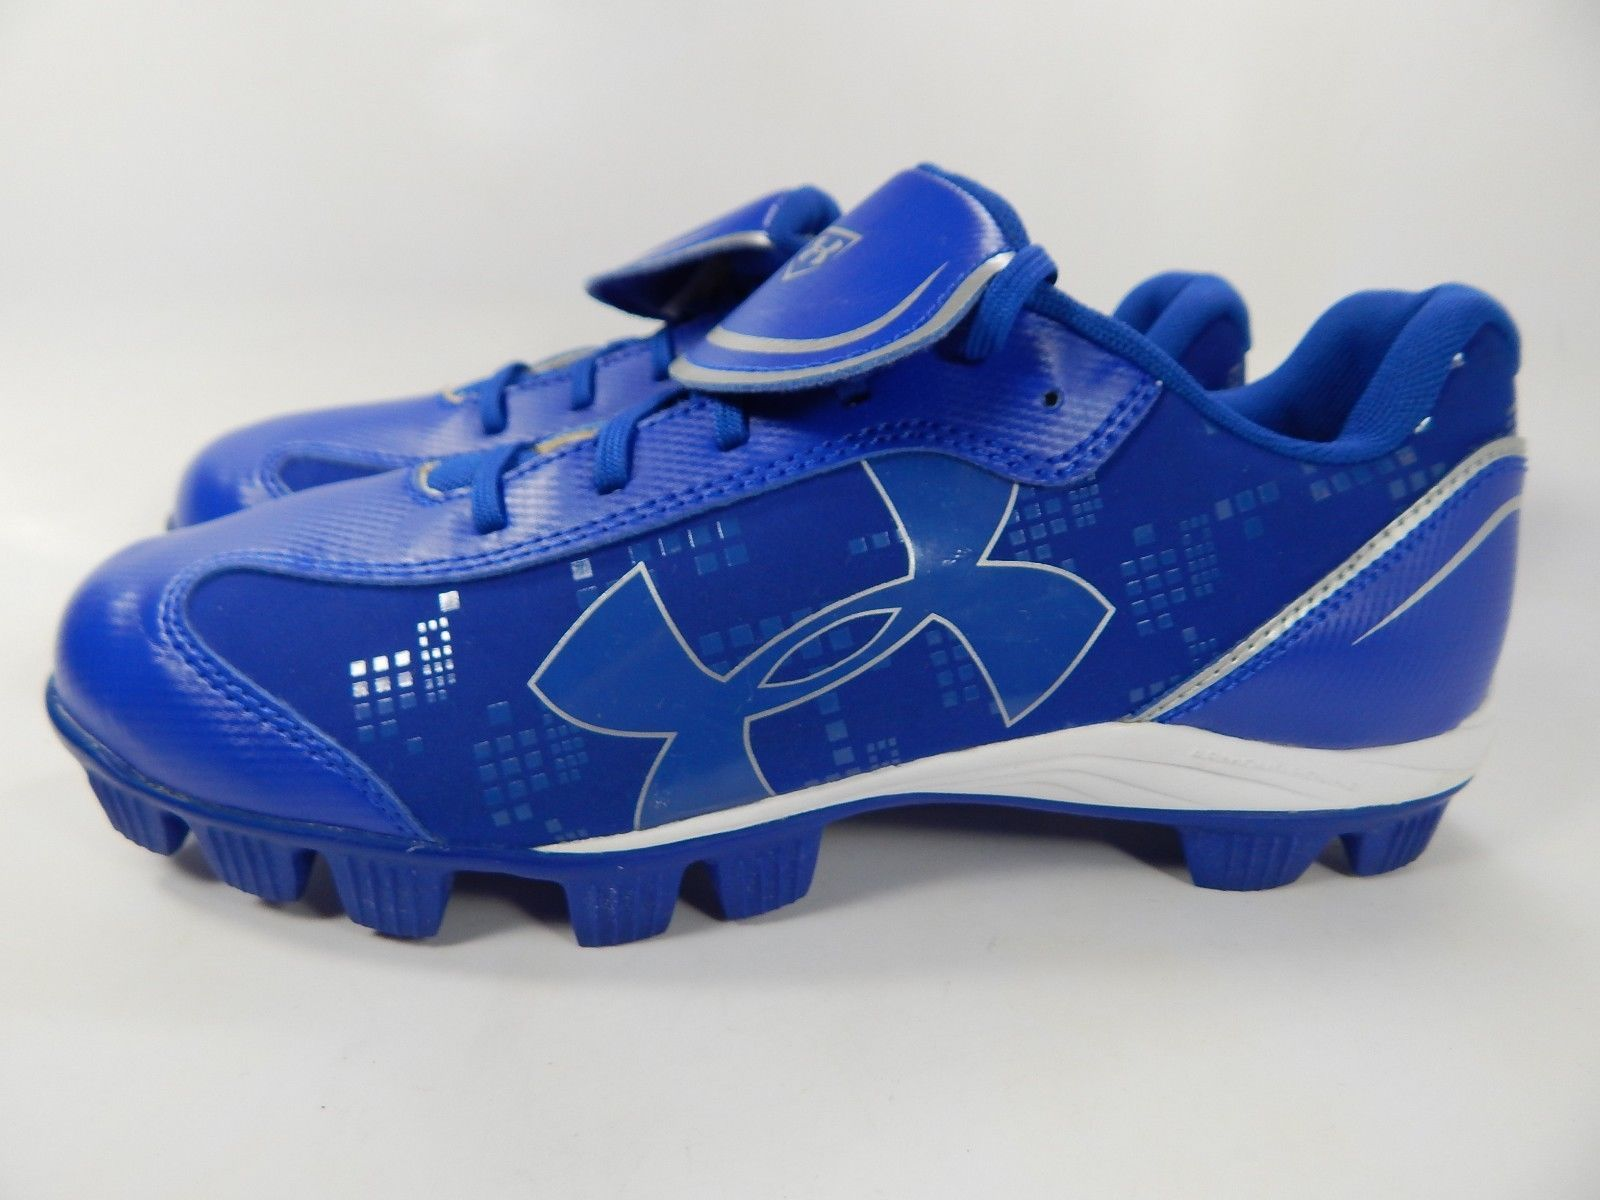 Under Armour Glyde RM CC Sz US 6.5 M EU 37.5 Women's Softball Cleats 1233552-411